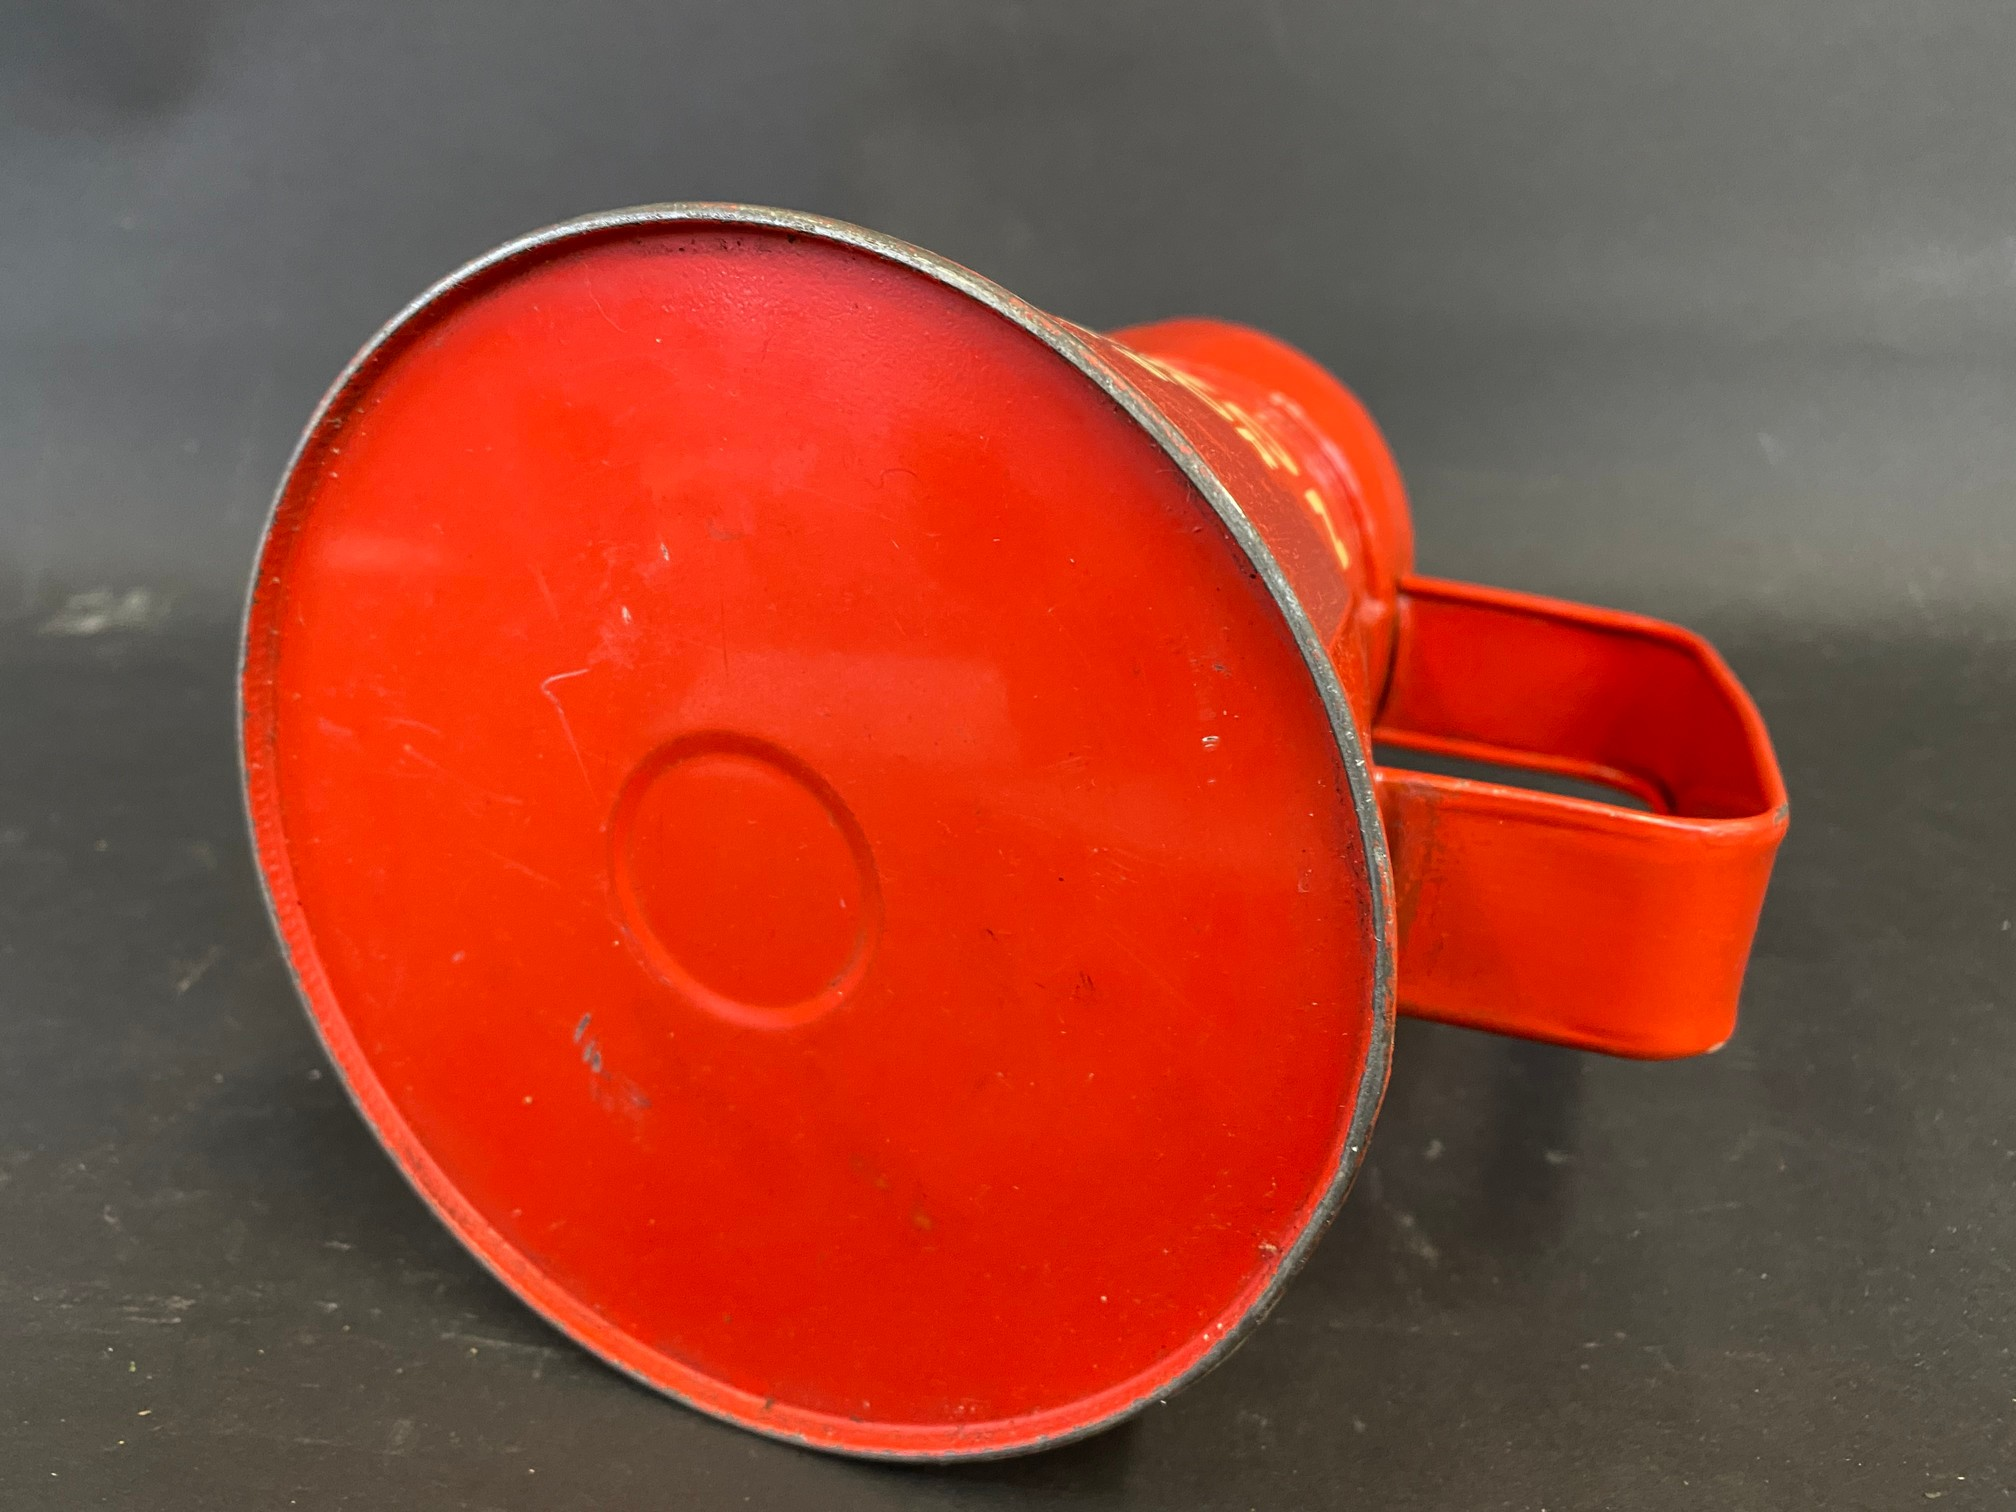 A Thelson Tractor Oils quart measure, in good condition. - Image 5 of 5